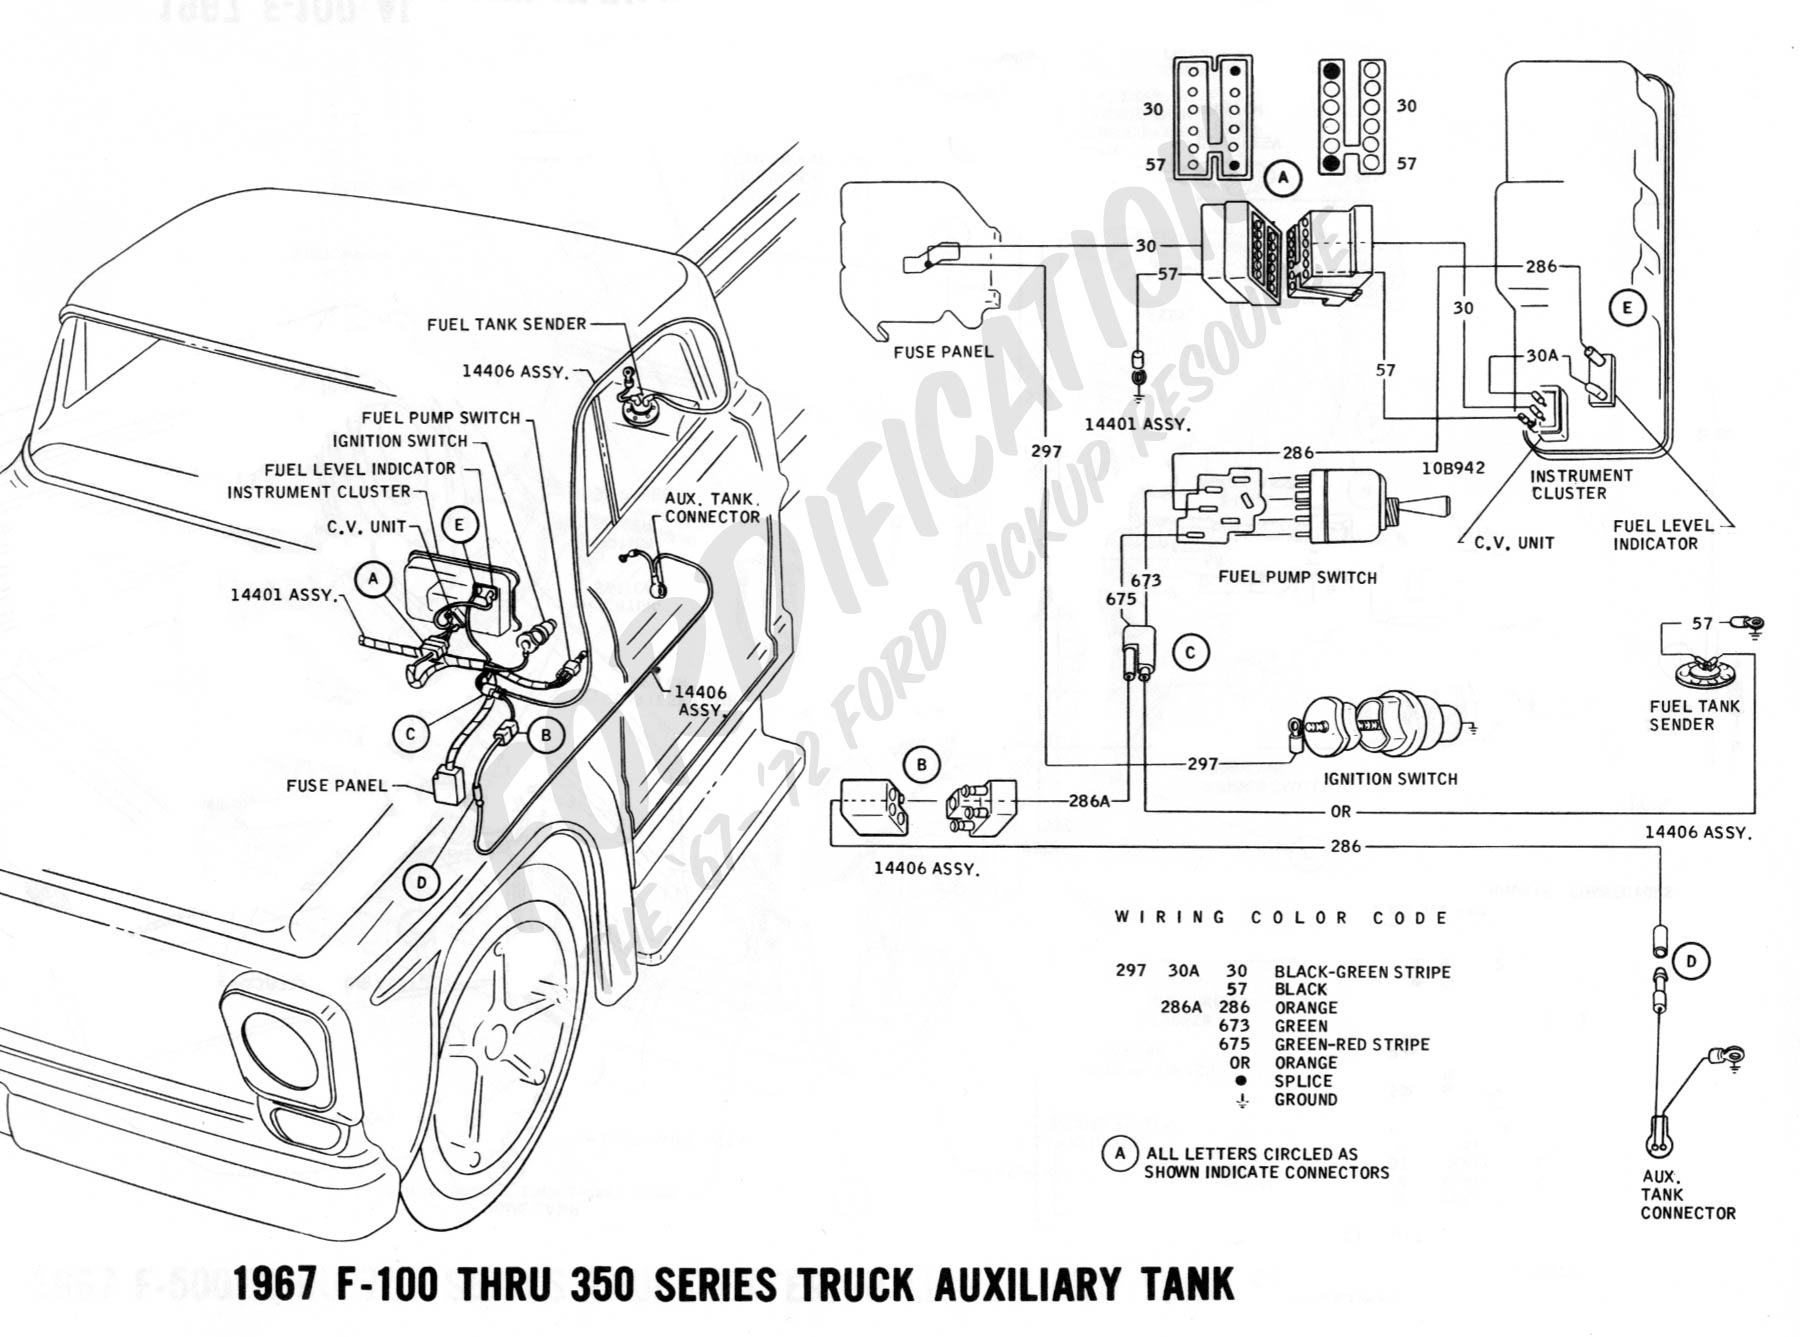 wiring 1967auxtank wiring diagram 1989 f250 fuel switch readingrat net Wiring Diagram for 1965 Chevy Truck at honlapkeszites.co